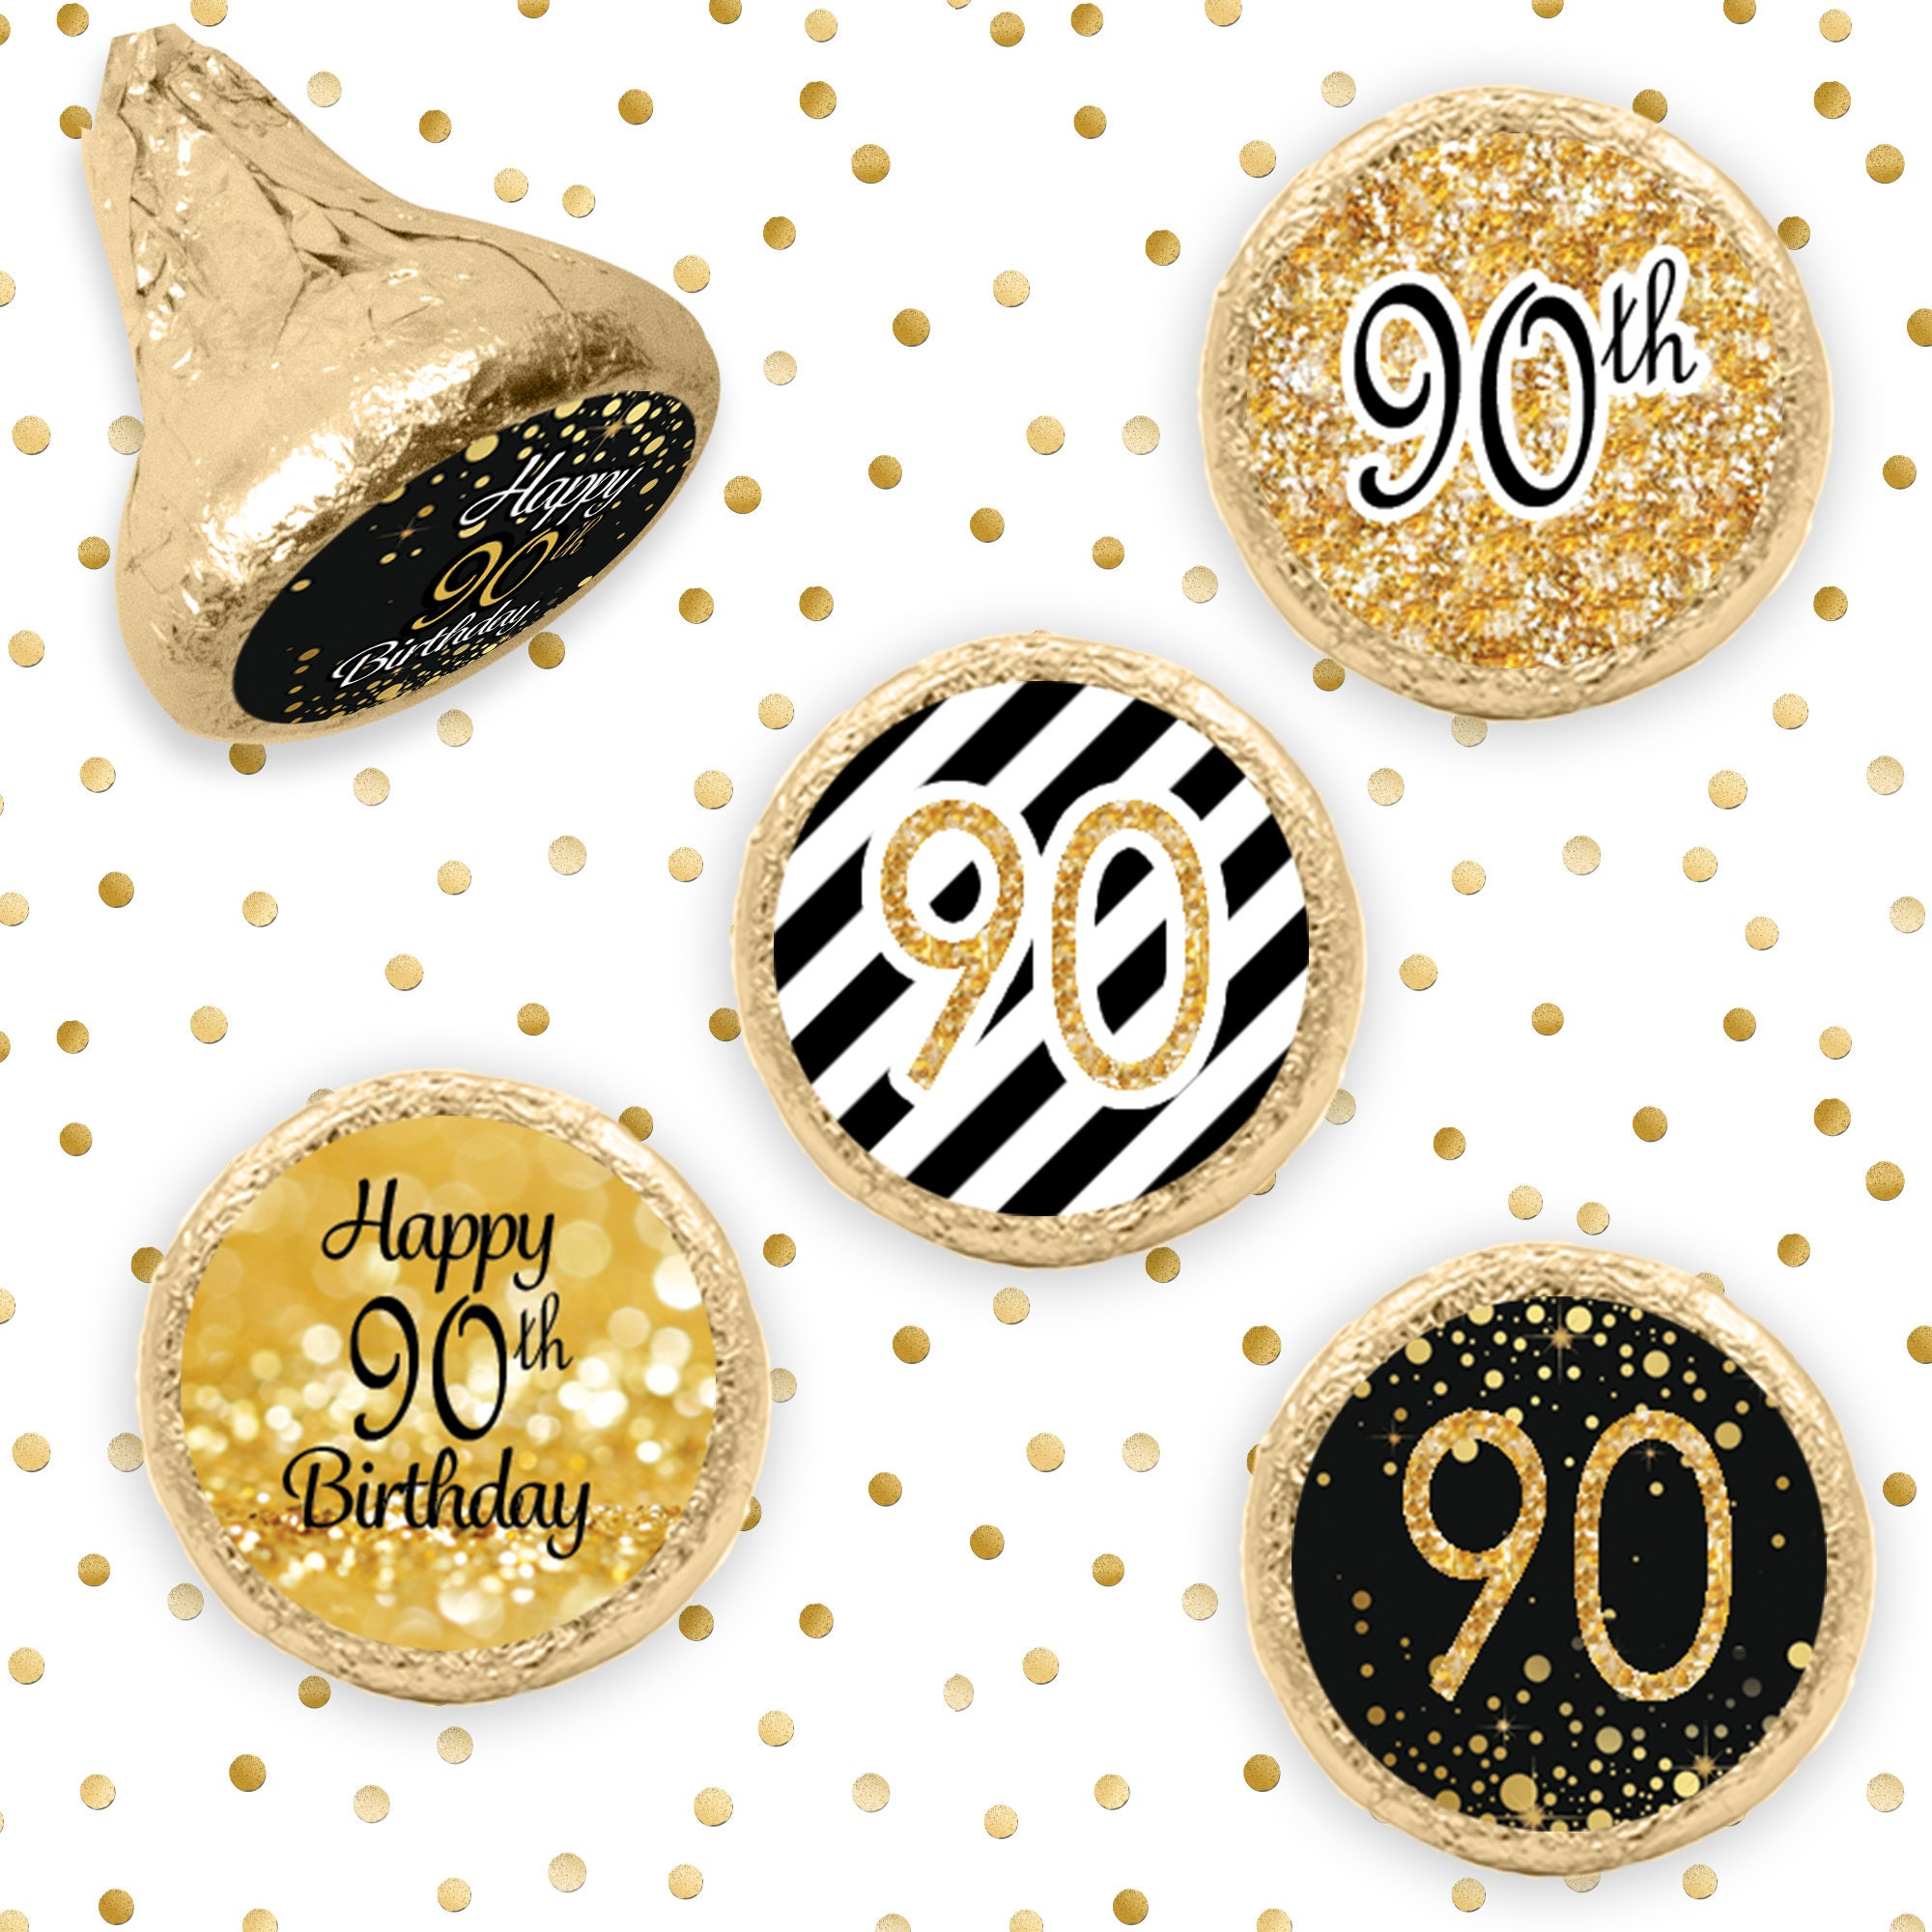 90th birthday party decorations gold black stickers for for 90th birthday decoration